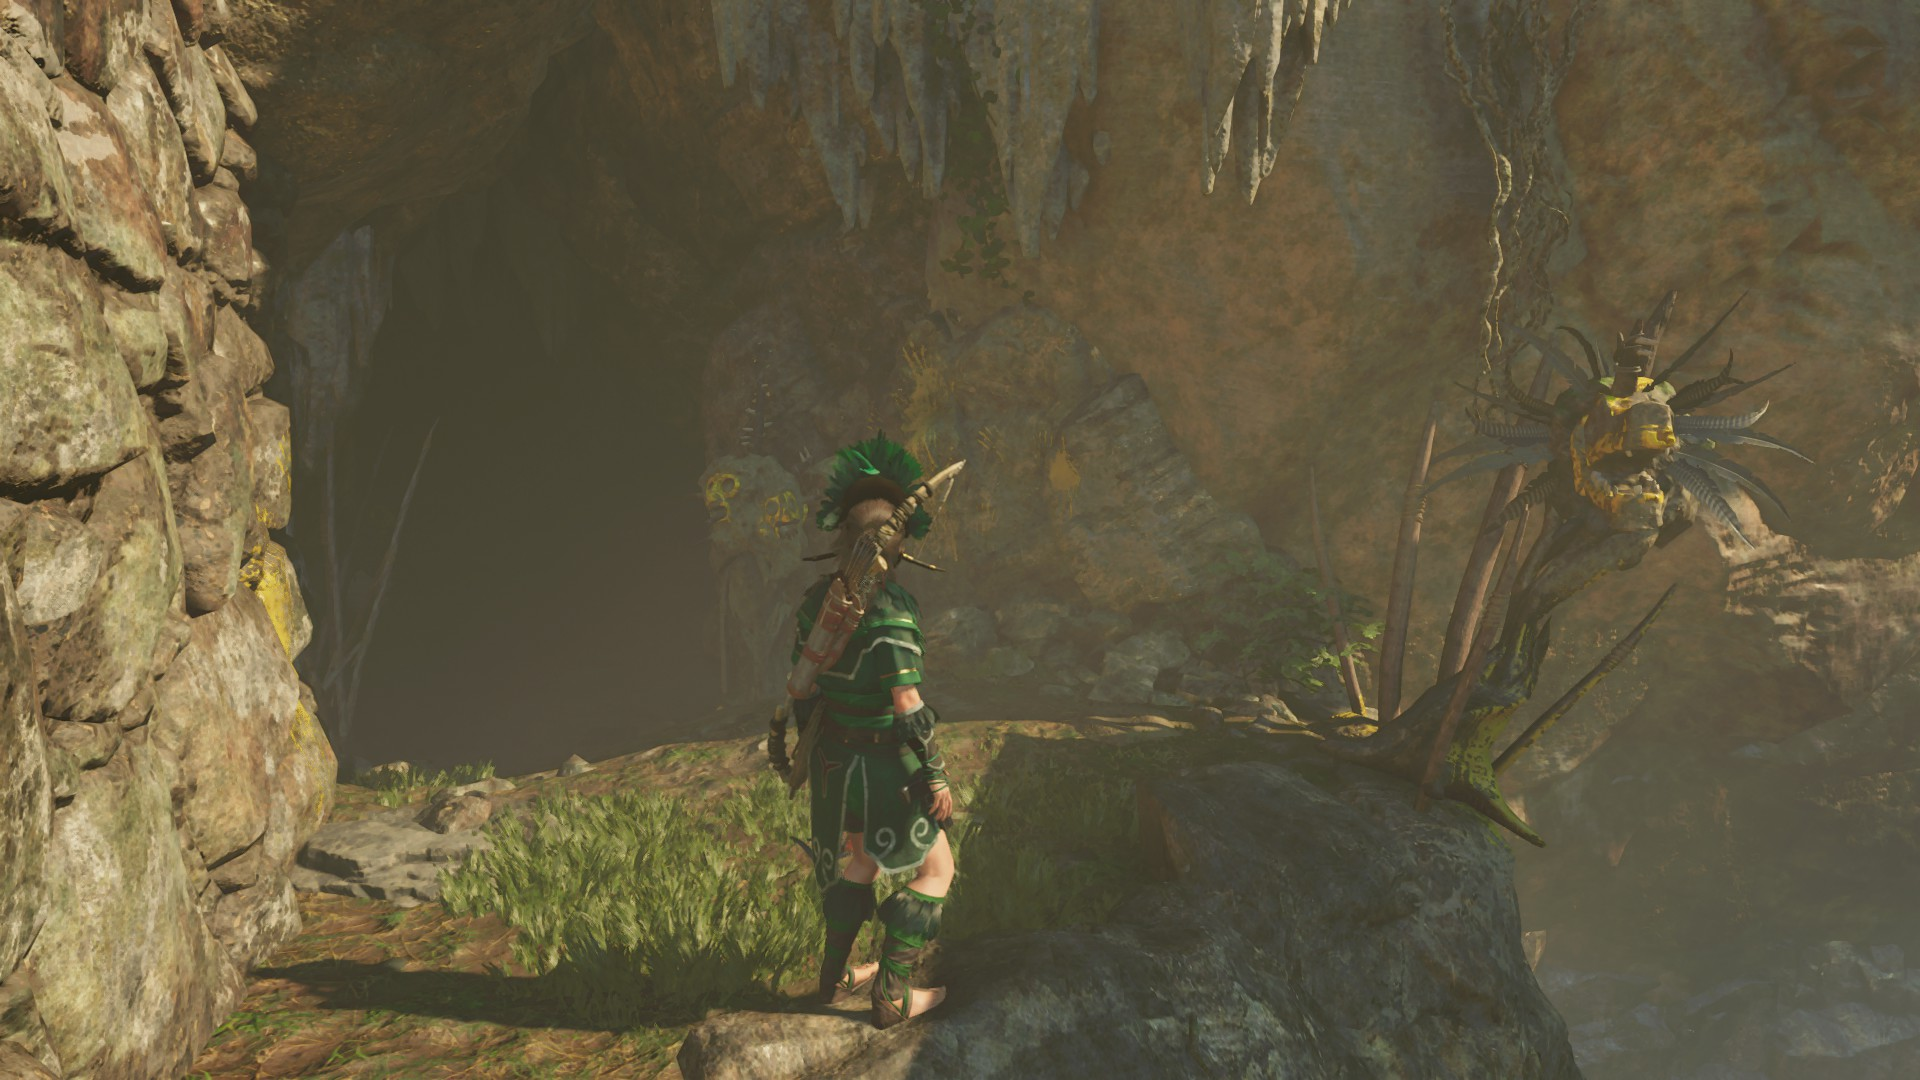 Lara outside Ancient Aqueduct challenge tomb. It's just off the cliff to the side of Temple of Kukulkhan base camp.